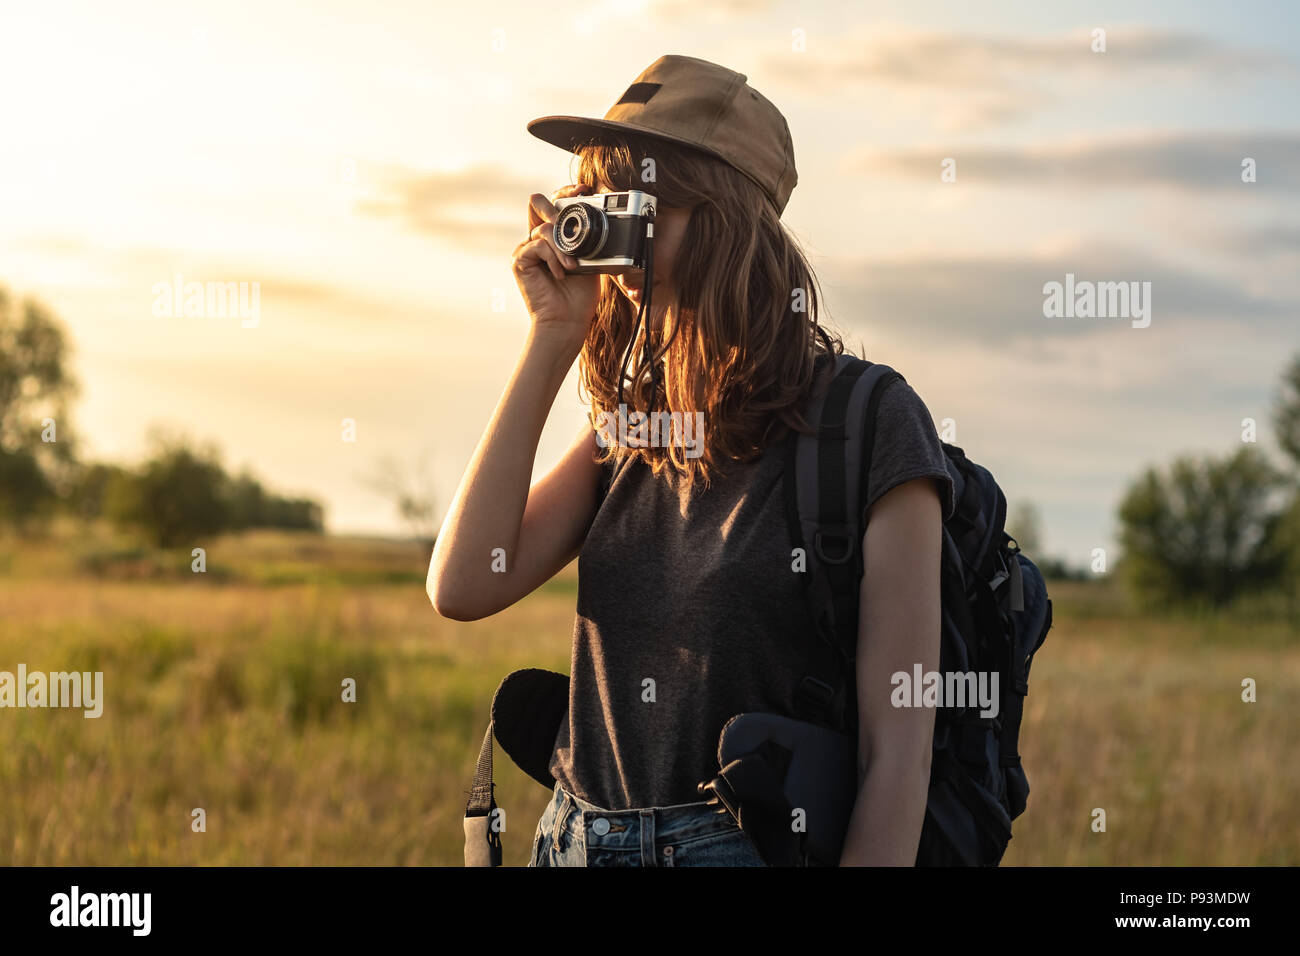 Young female tourist taking photo at hiking trip. Woman with backpack stands at sunset and photographs beautiful rural area - Stock Image